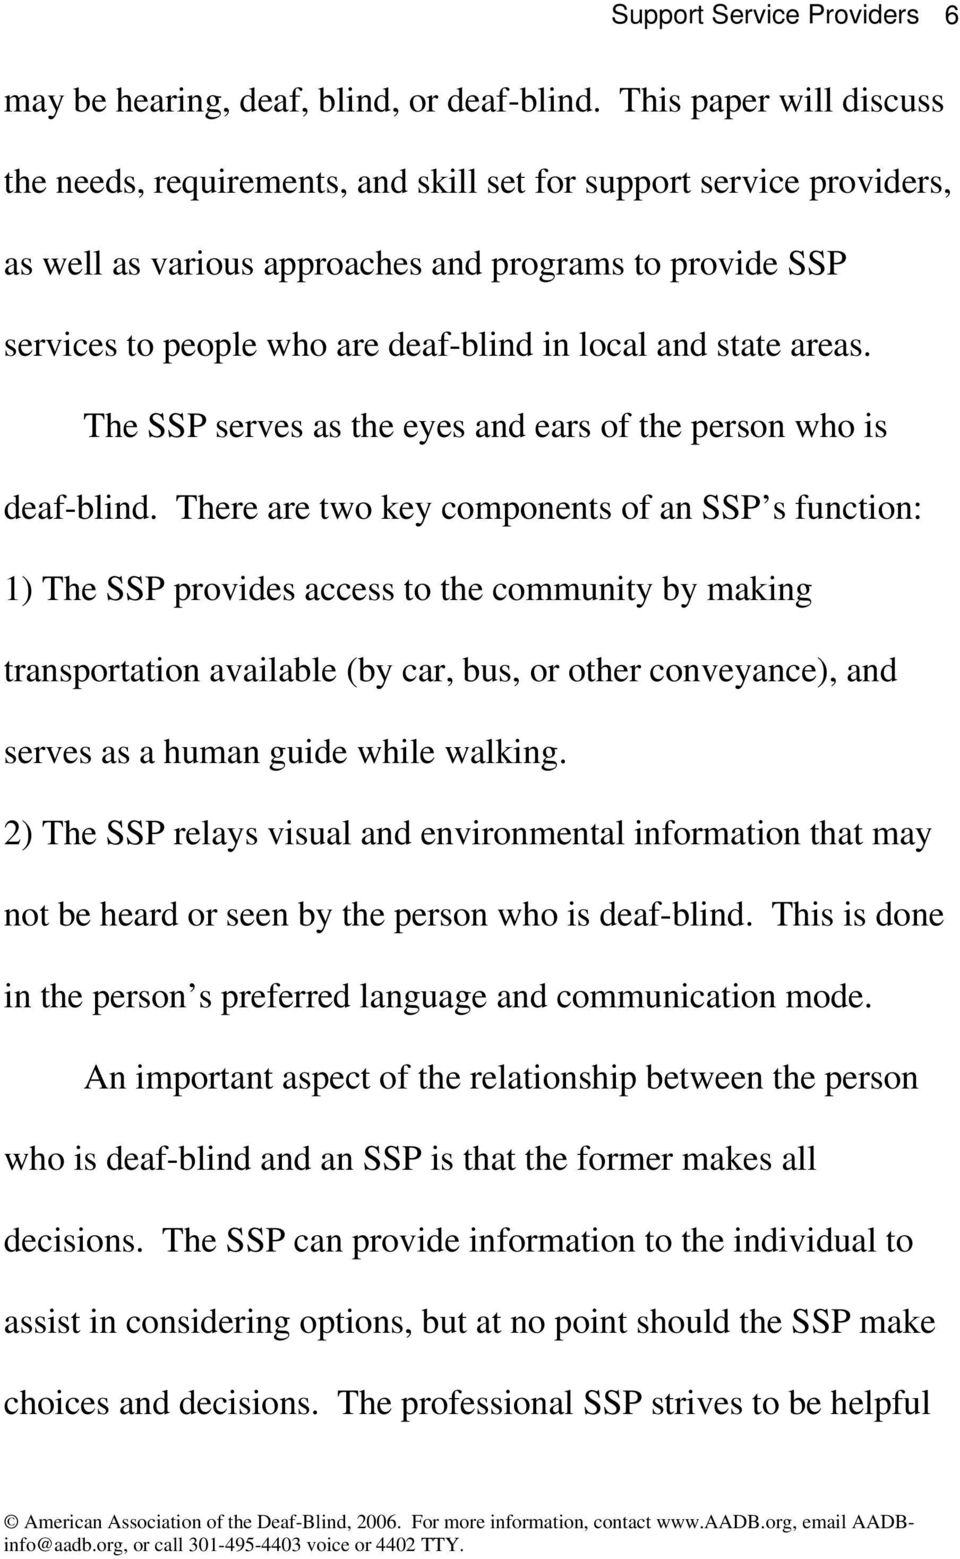 and state areas. The SSP serves as the eyes and ears of the person who is deaf-blind.